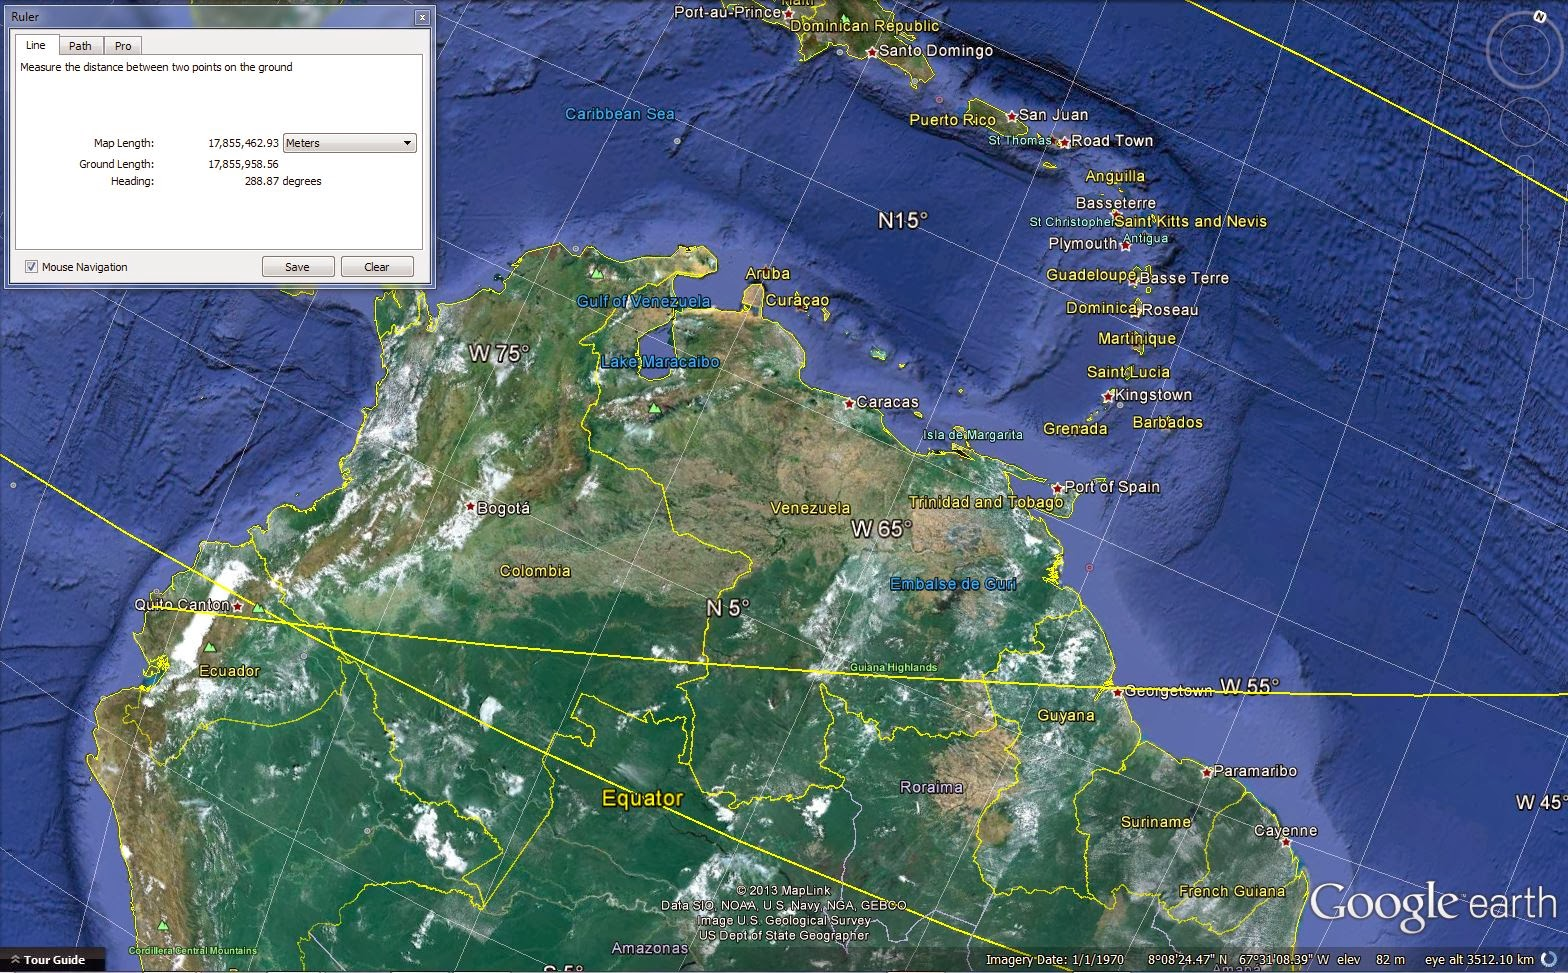 space images South America, Colombia, Venezuela, Caribbean Islands, Google Earth screenshot